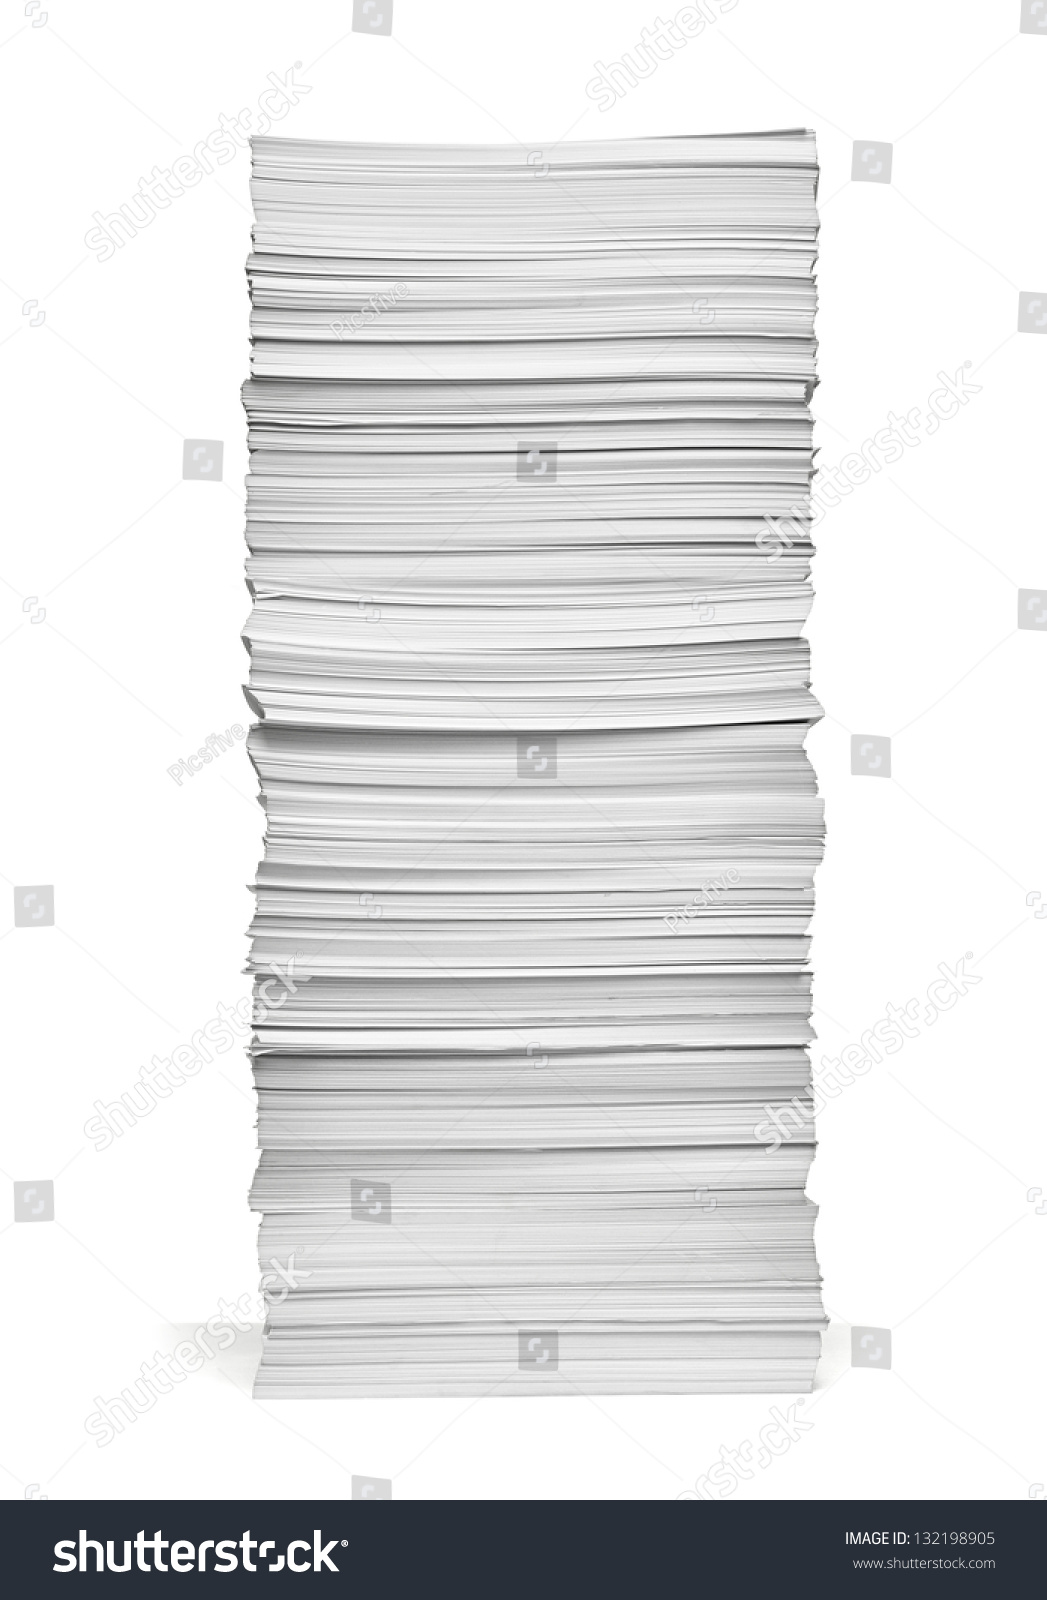 close stack papers on white background stock photo (edit now